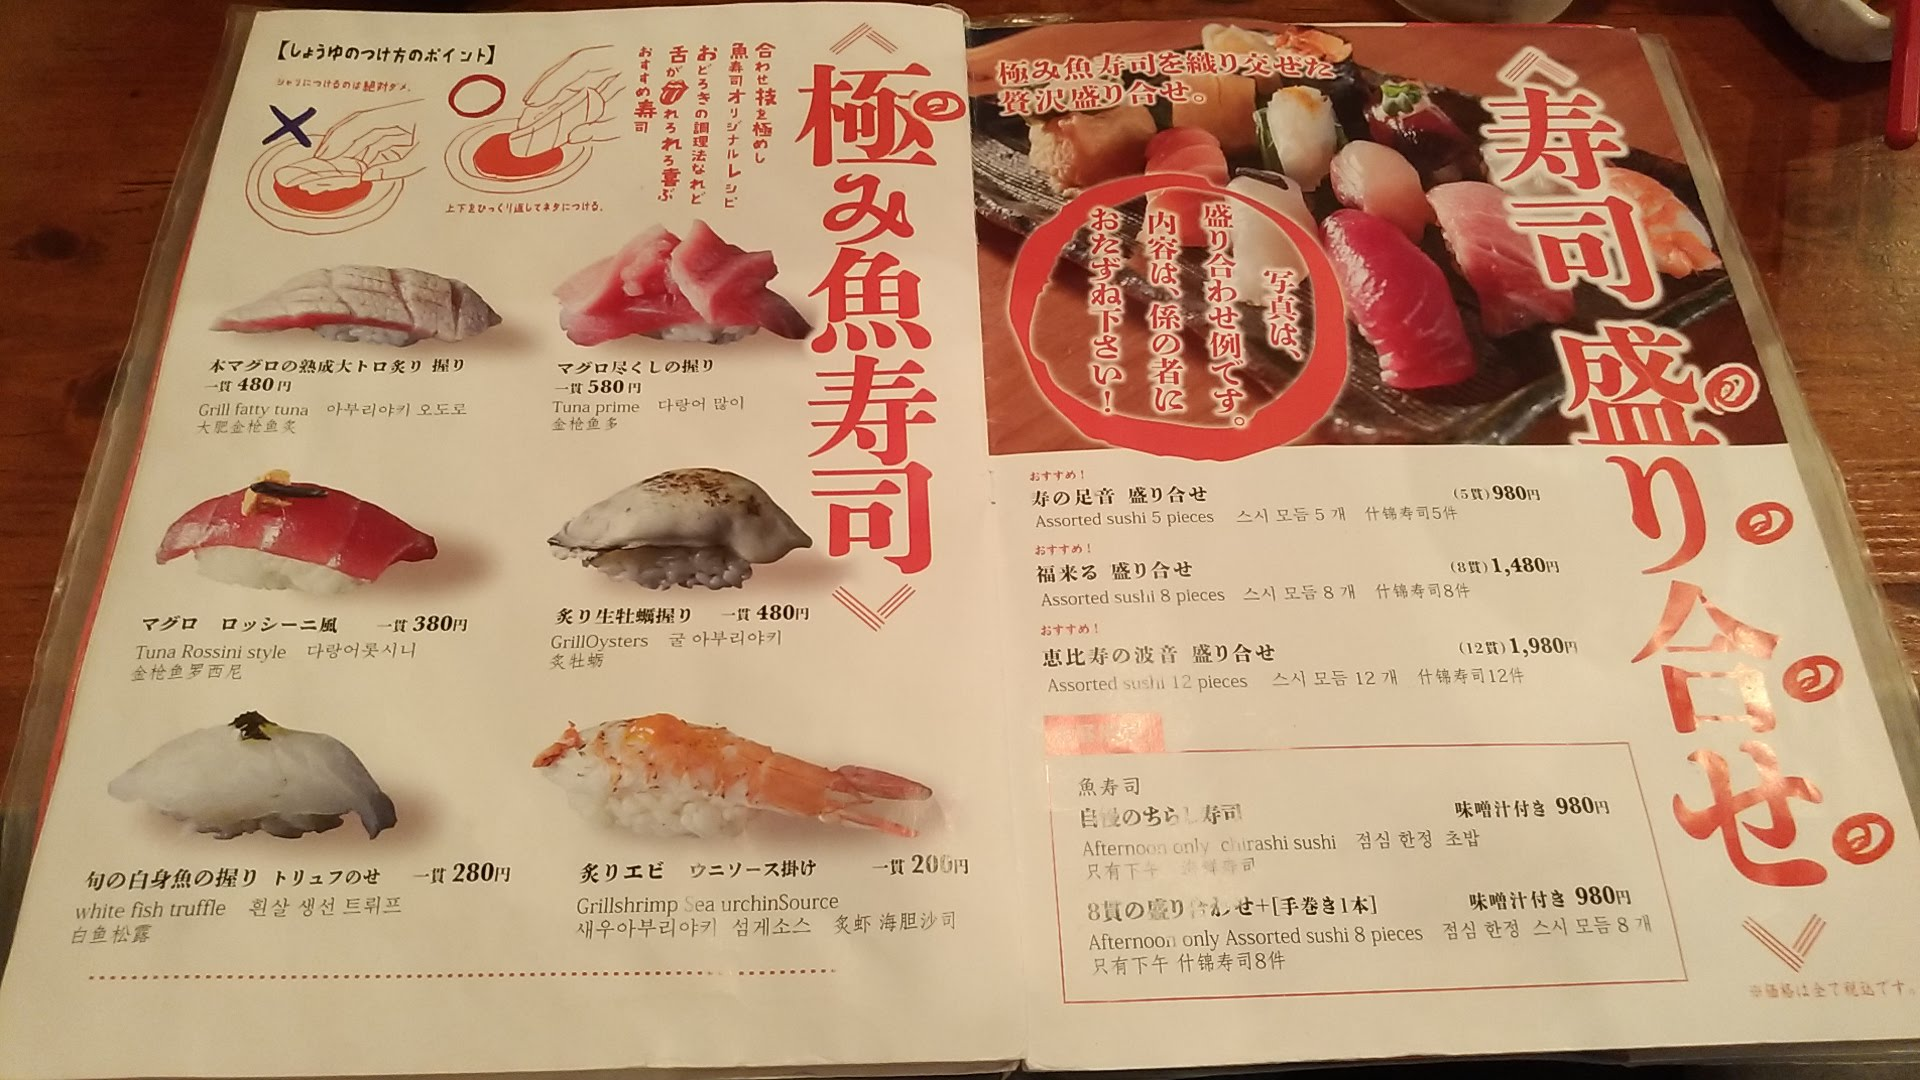 The menu of Sakana sushi 3